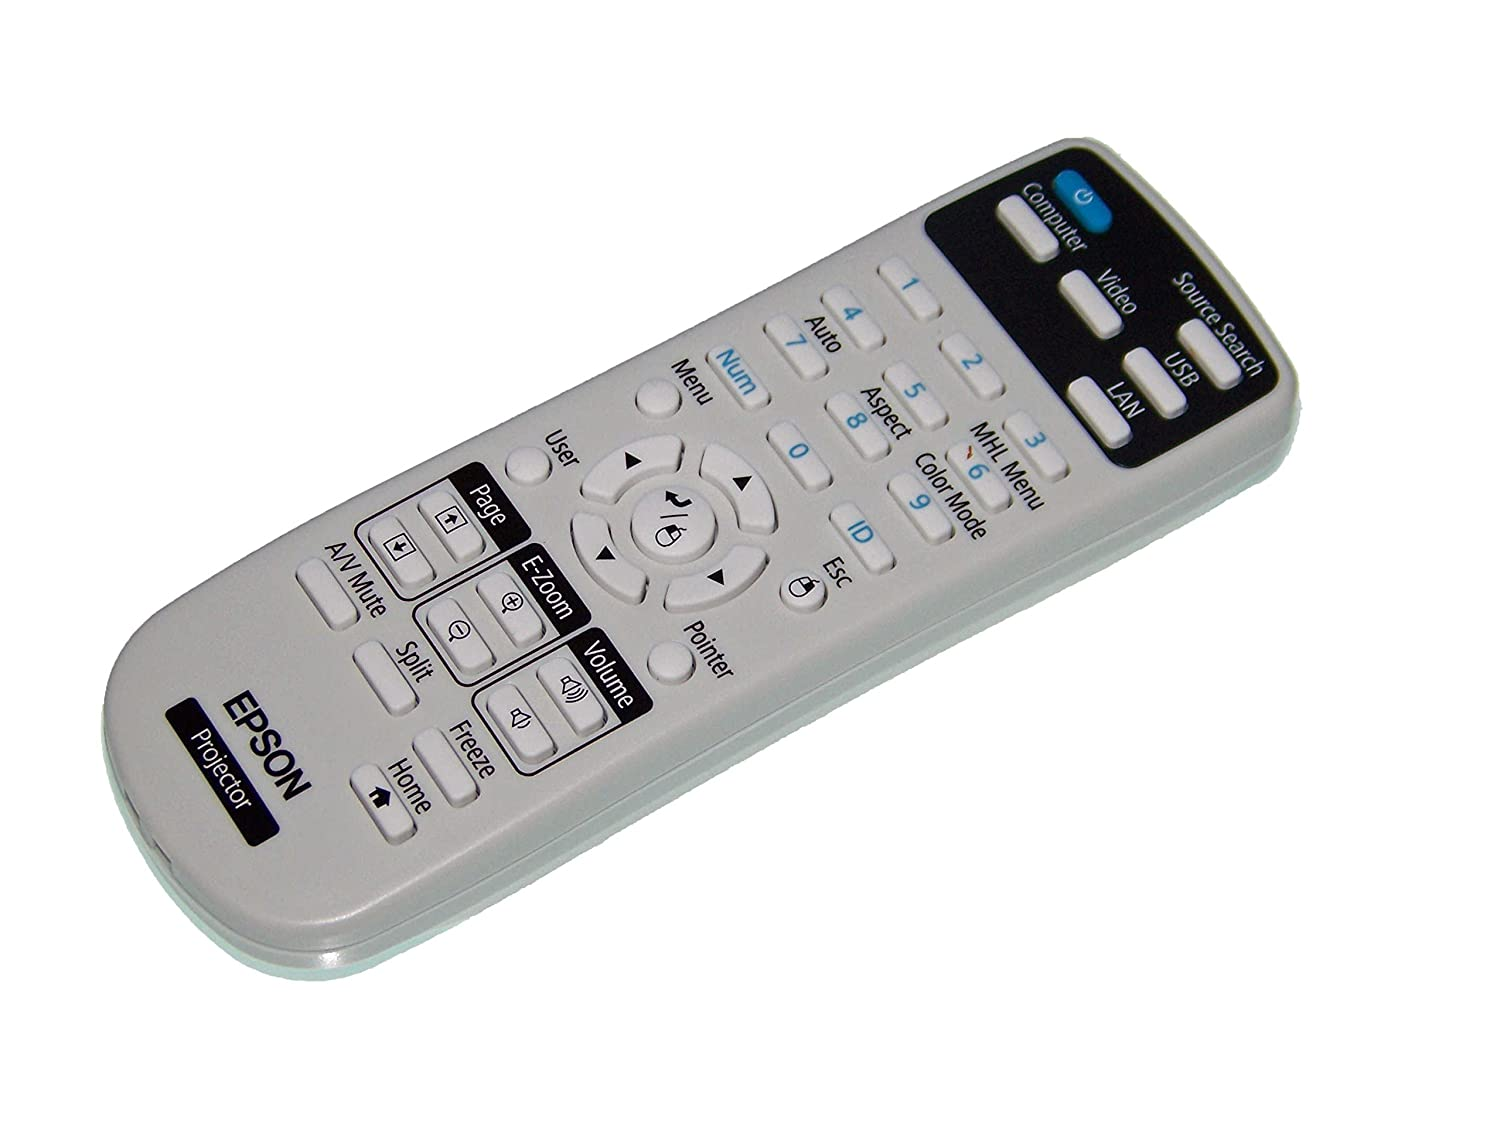 OEM Epson Projector Remote Control Shipped With Epson Models H772A H839A H841A H801A